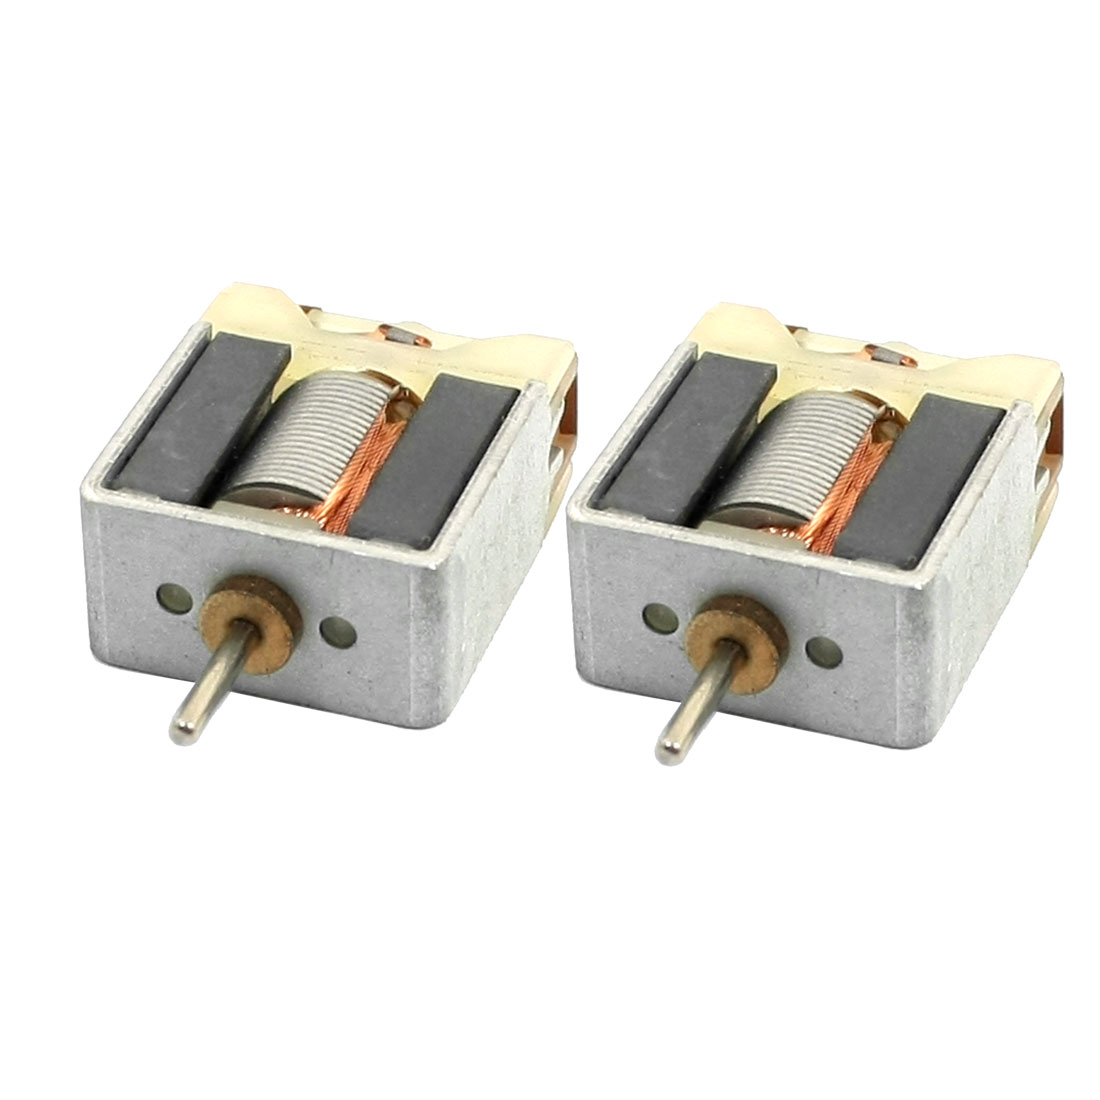 2pcs-6V-15000RPM-Bare-Magnetic-Carbon-Brush-DC-Vibrating-Micro-Motor